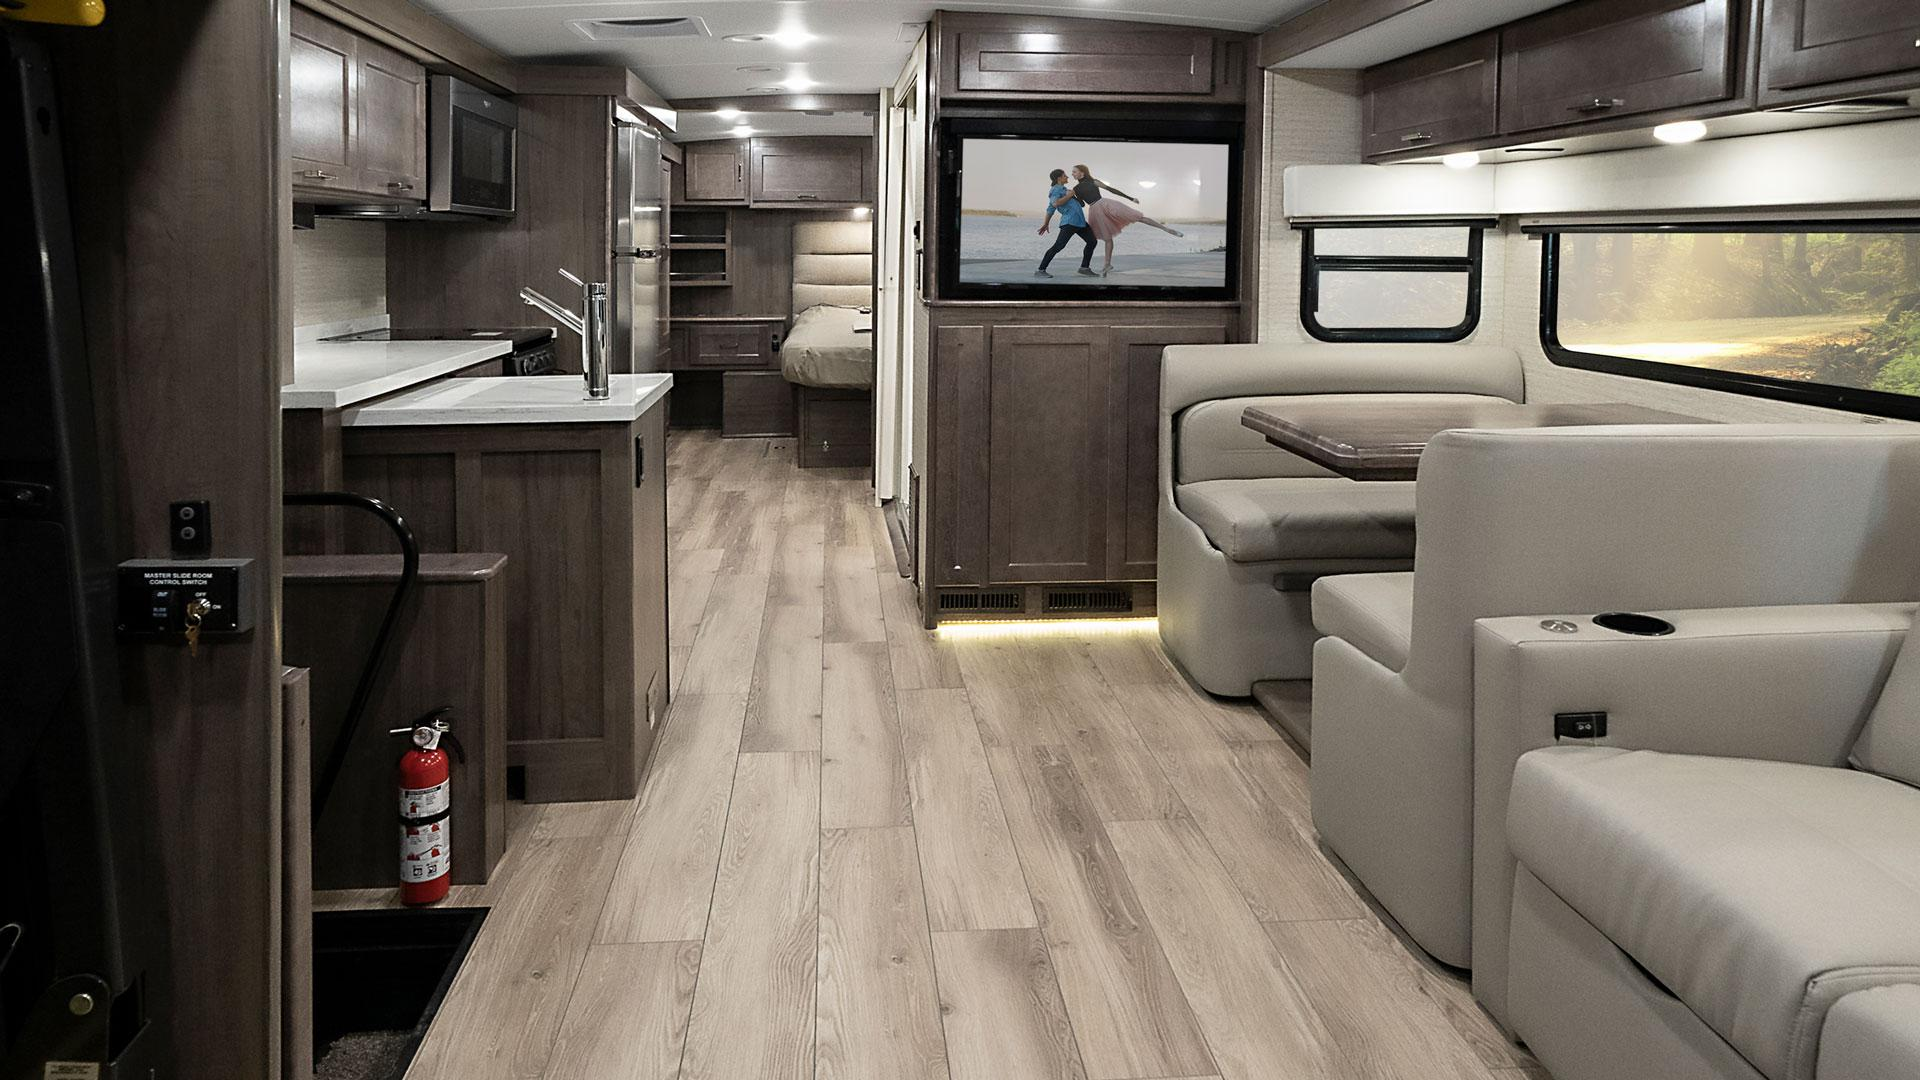 /Files/Images/Winnebago/Products/2020/Forza-AE/FZAE-F2B-20.jpg